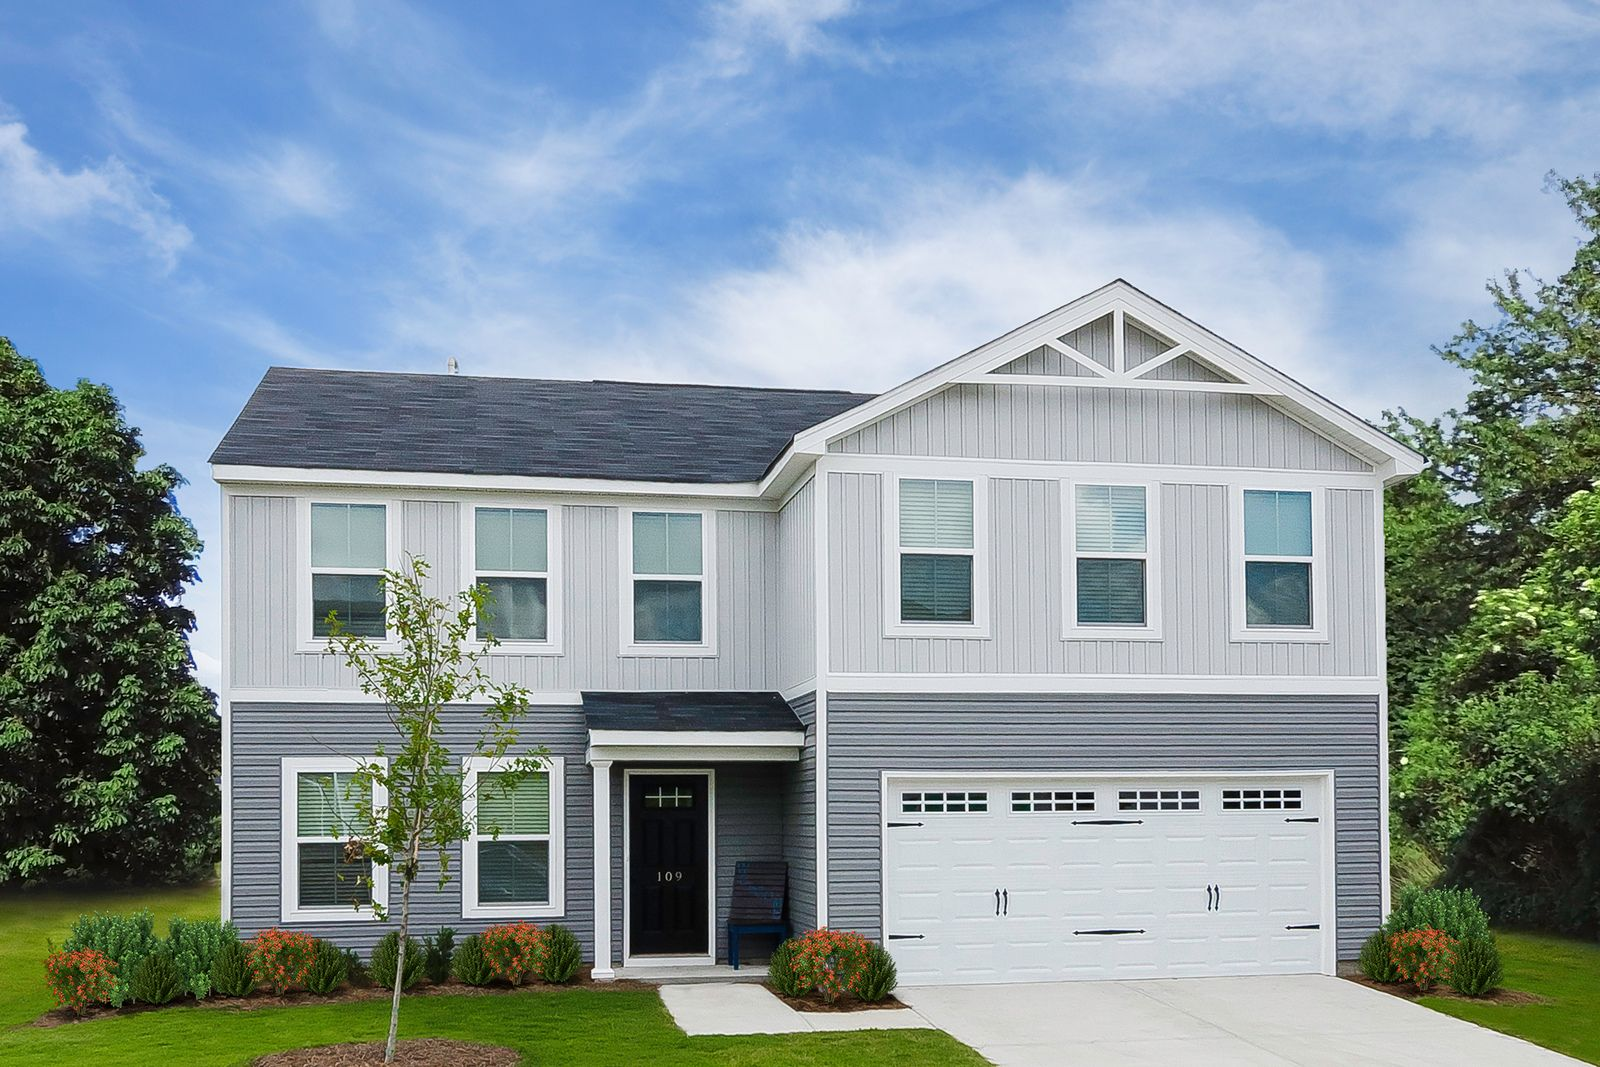 WELCOME HOME TO THE PRESERVE AT QUARRY LAKES